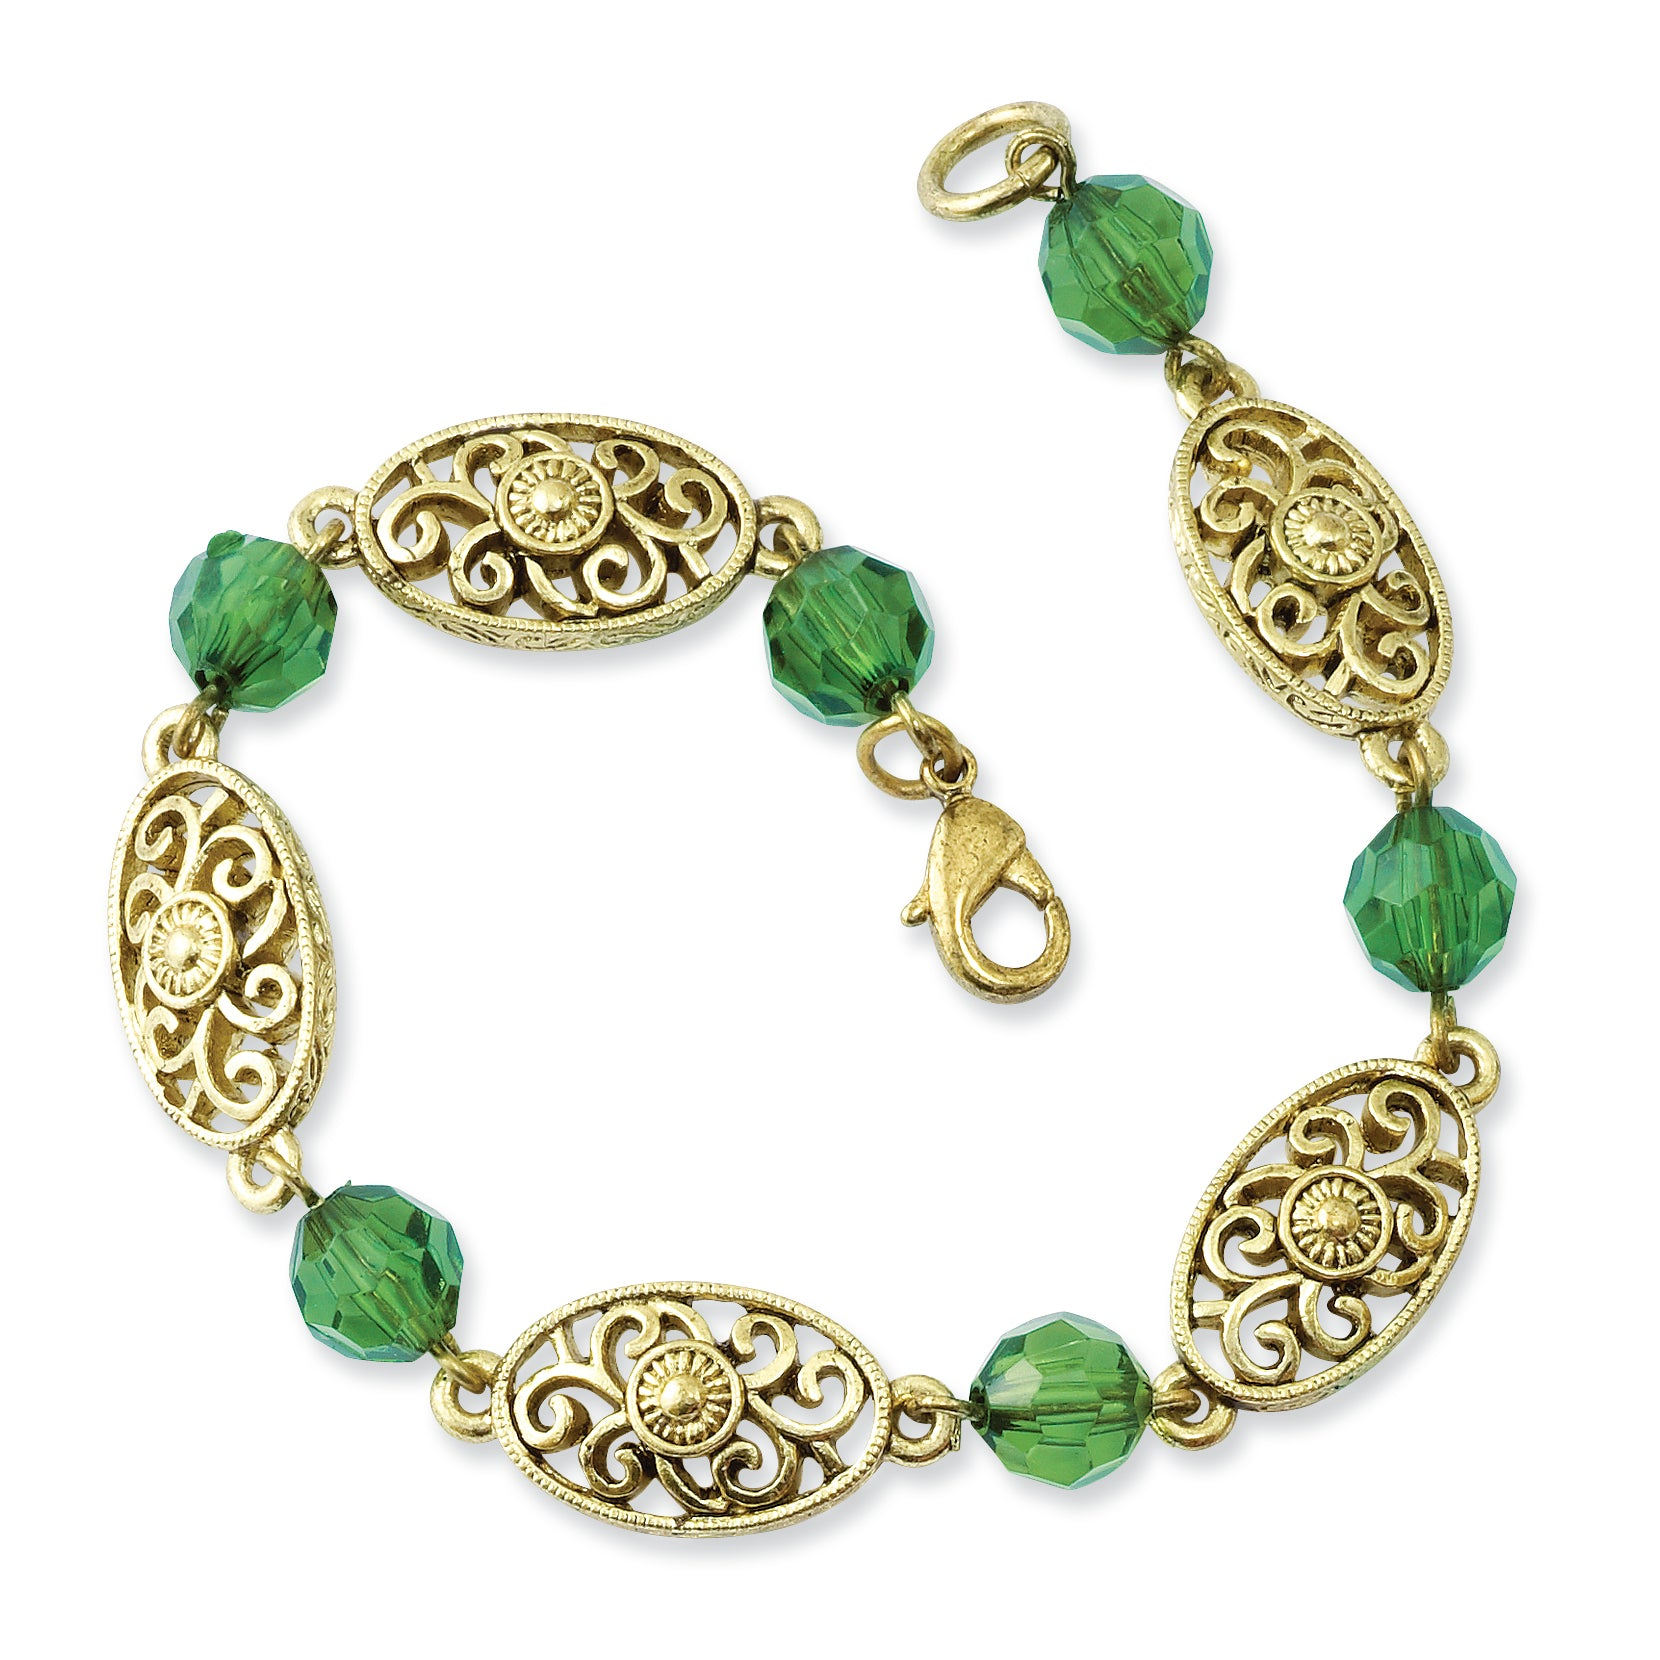 Brass-tone Green Acrylic Beads 7.5in Bracelet BF1233 - shirin-diamonds